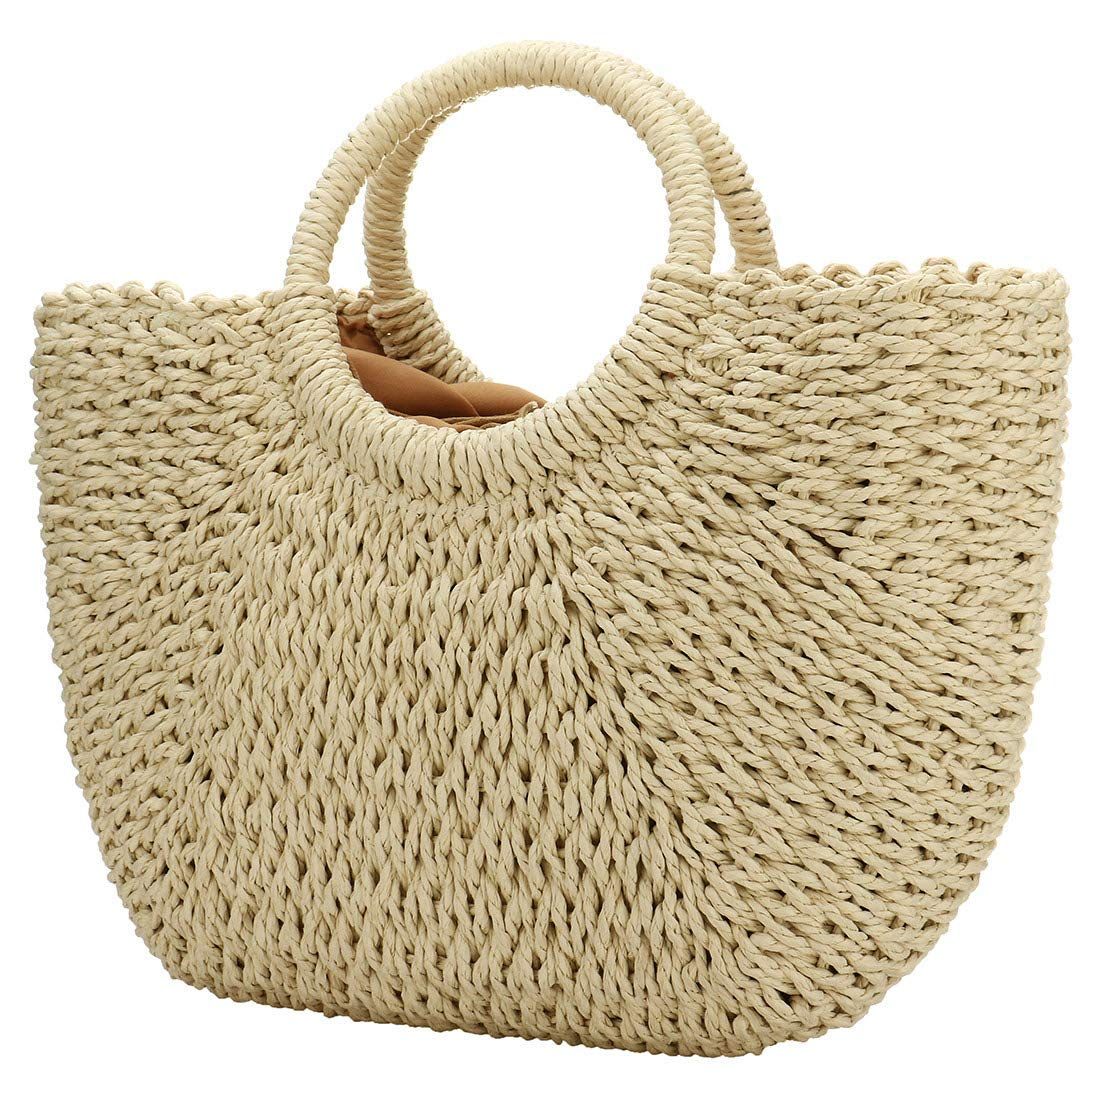 bce528fc7ba Amazon.com: Hand-woven Straw Large Hobo Bag for Women Round Handle Ring  Toto Retro Summer Beach (Beige): Clothing